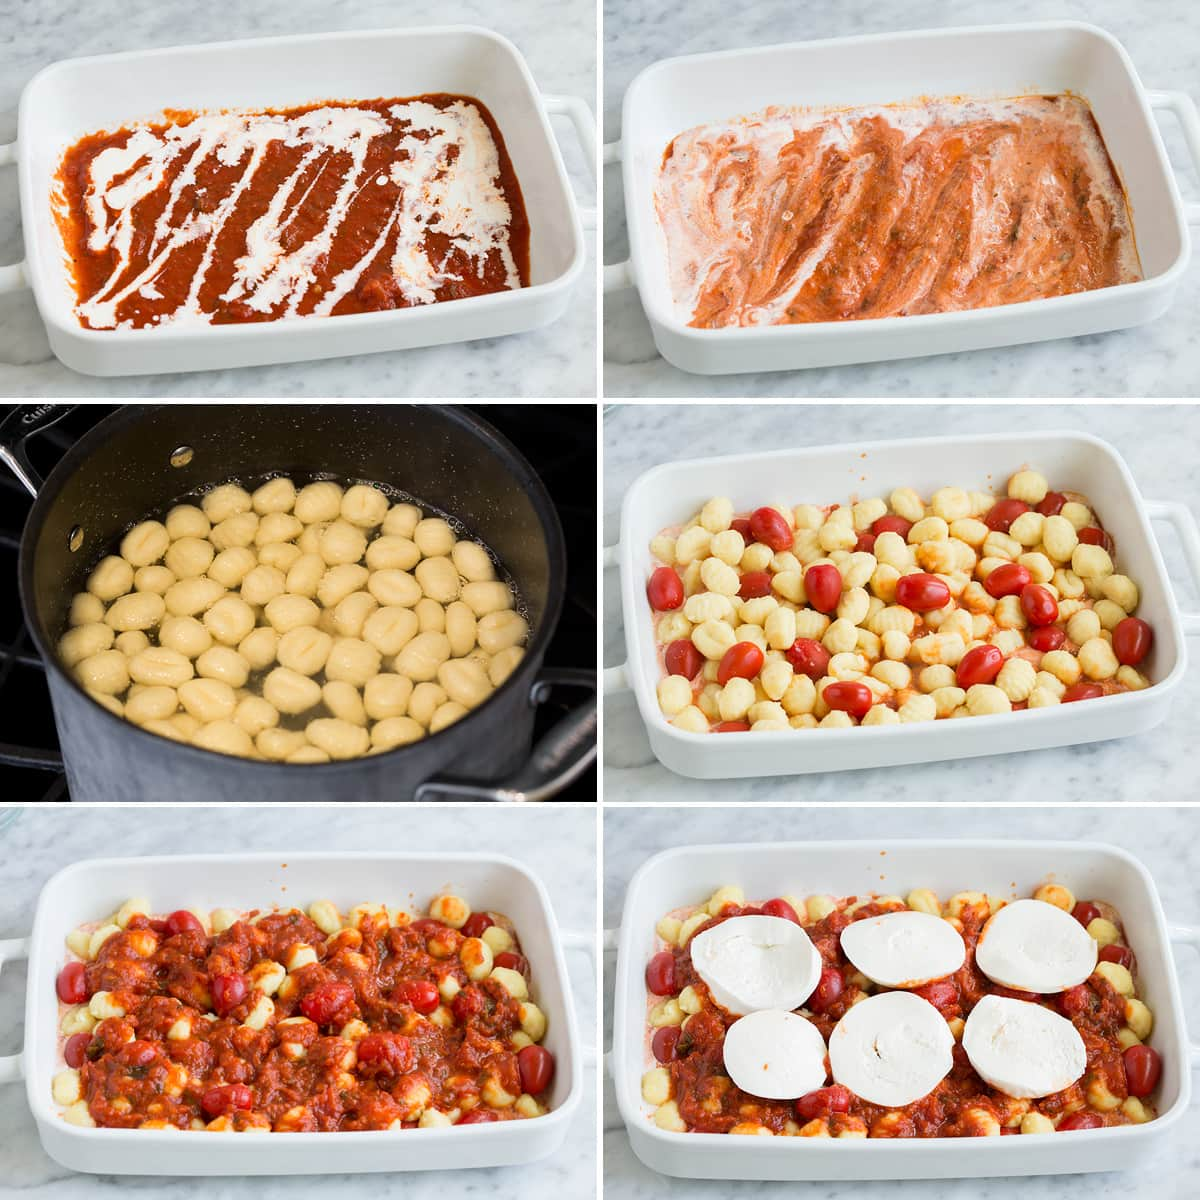 Image of steps showing how to make baked gnocchi in a casserole dish.